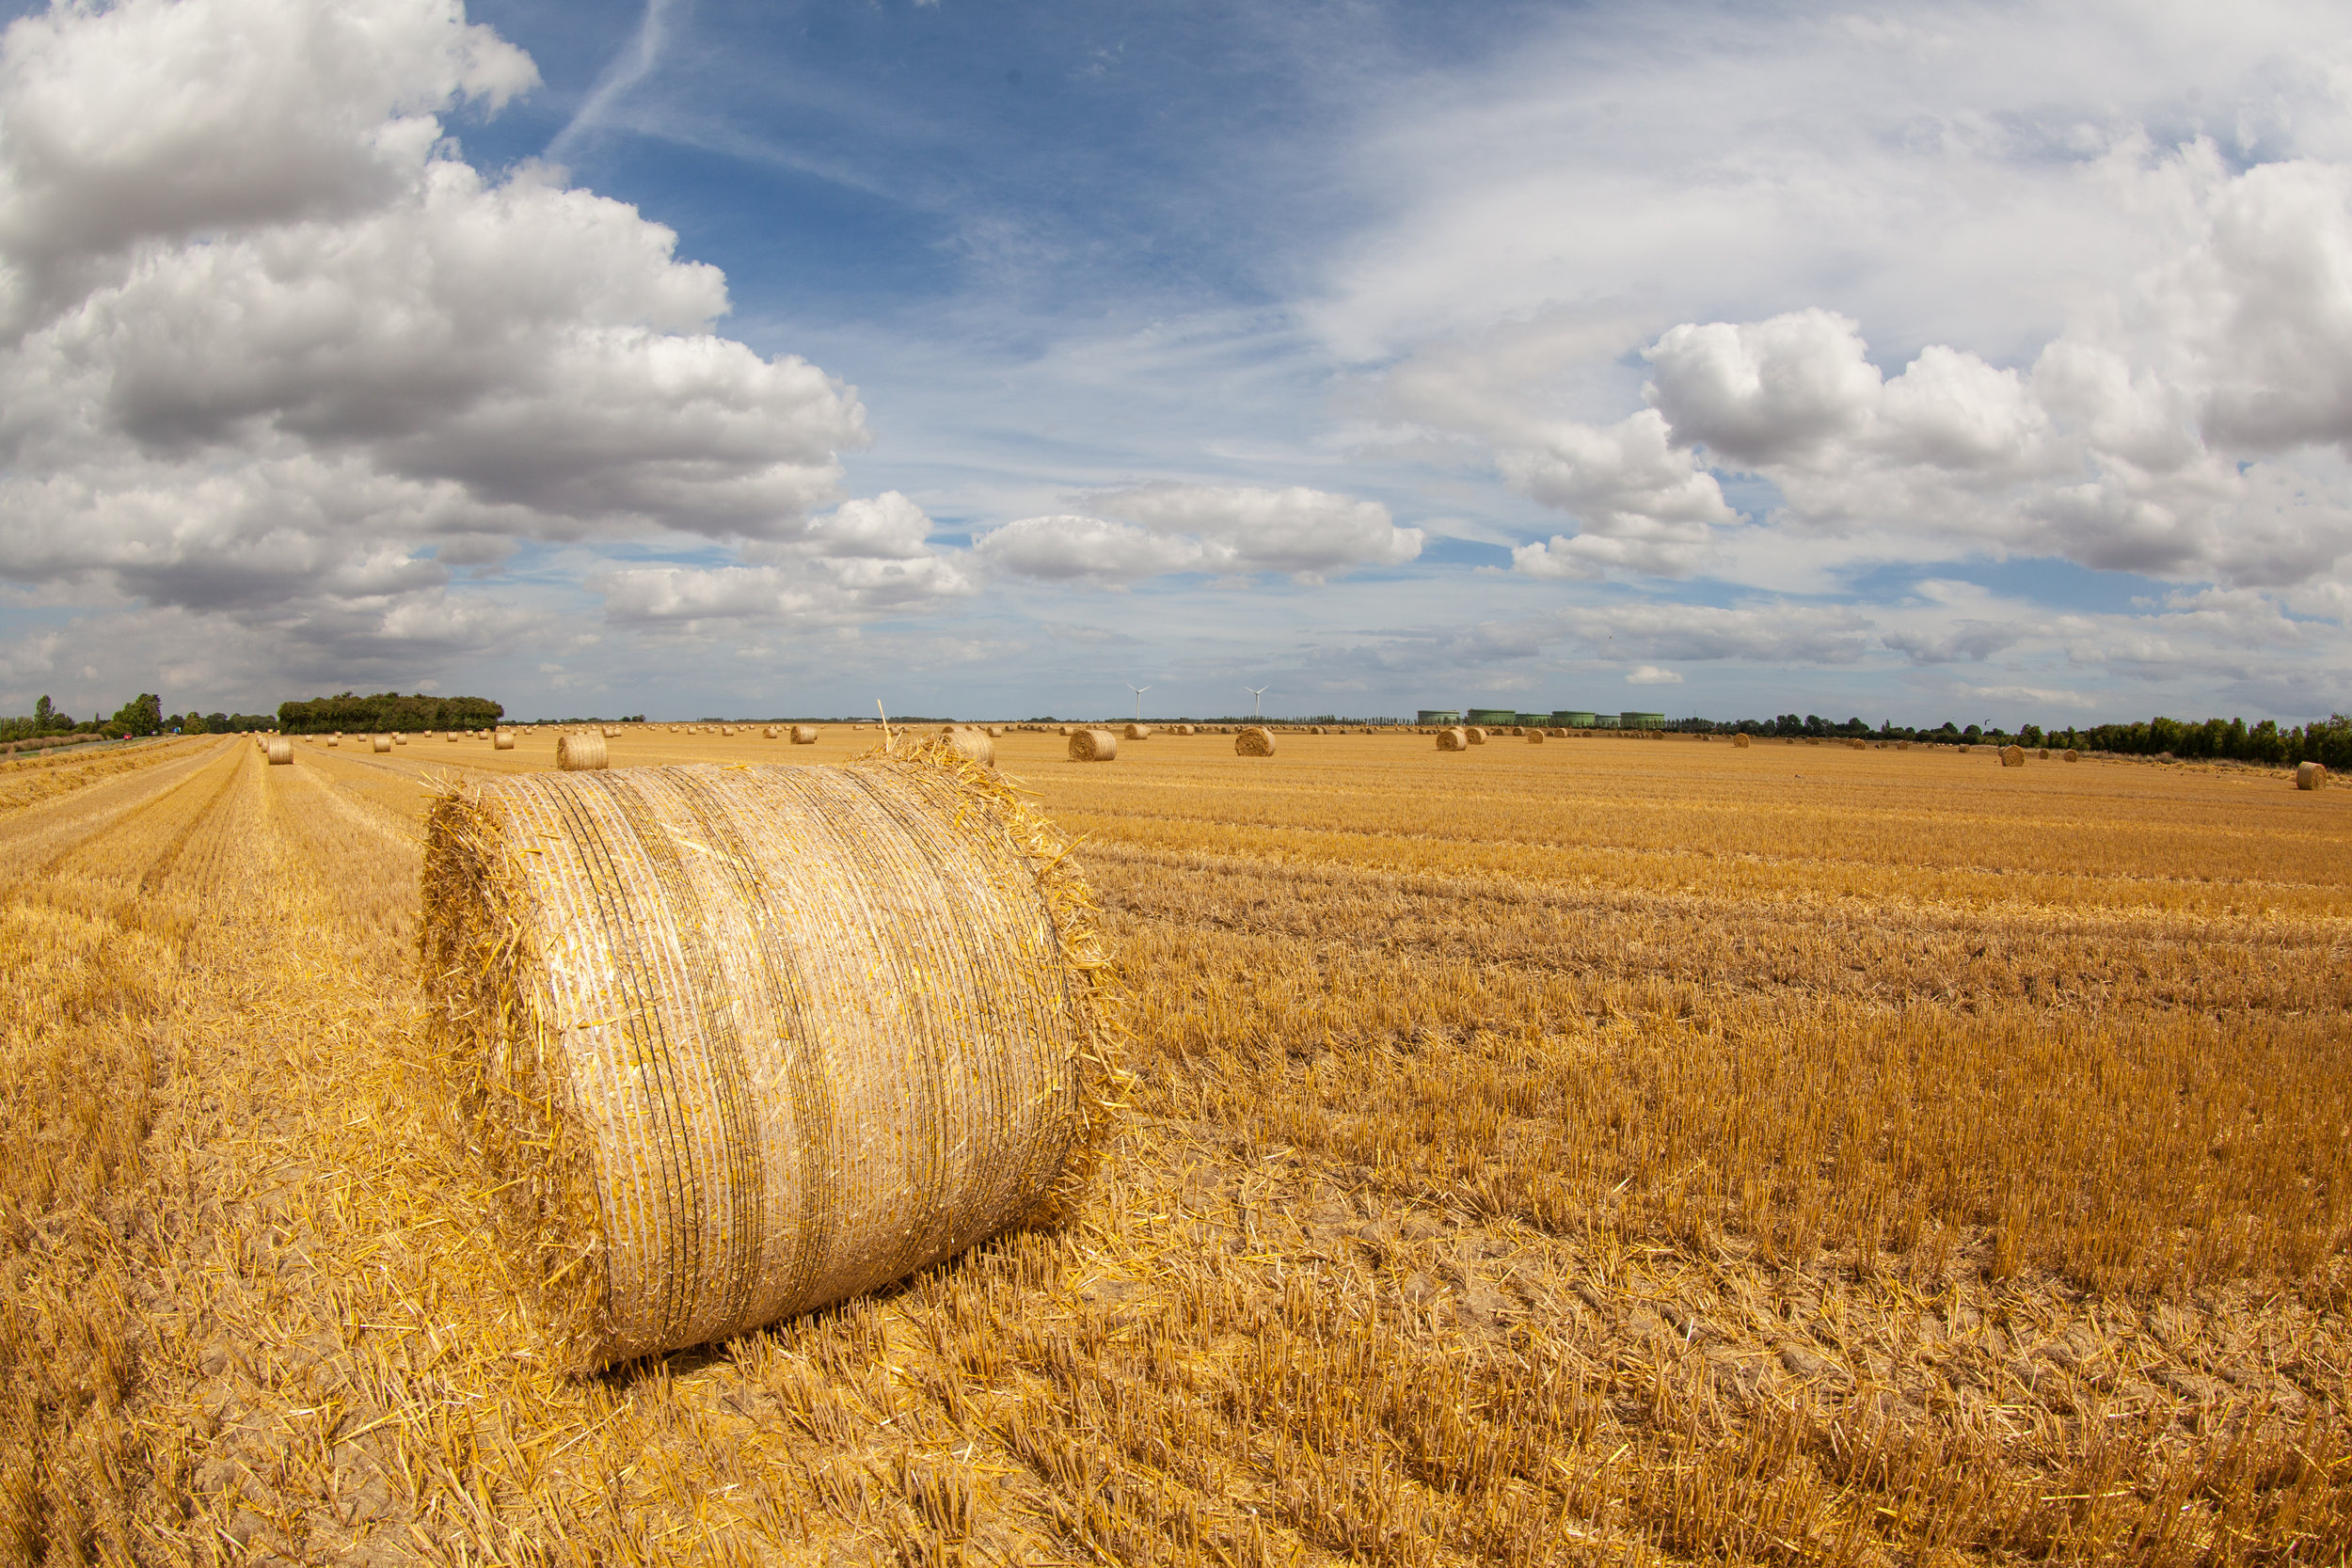 Hay bails in a field, summertime in England.